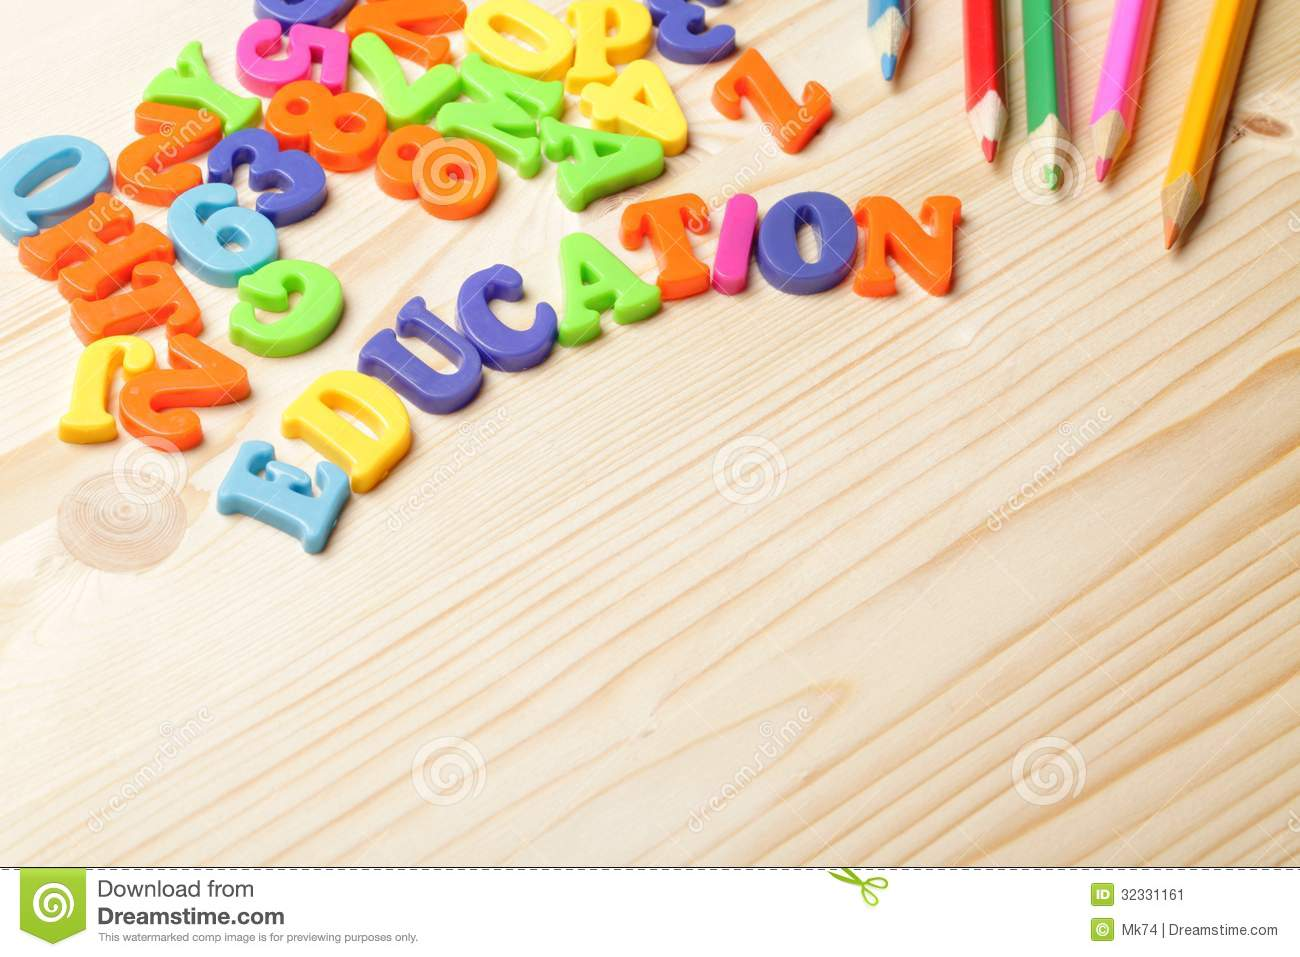 education-background-colorful-numbers-letters-wooden-32331161.jpg